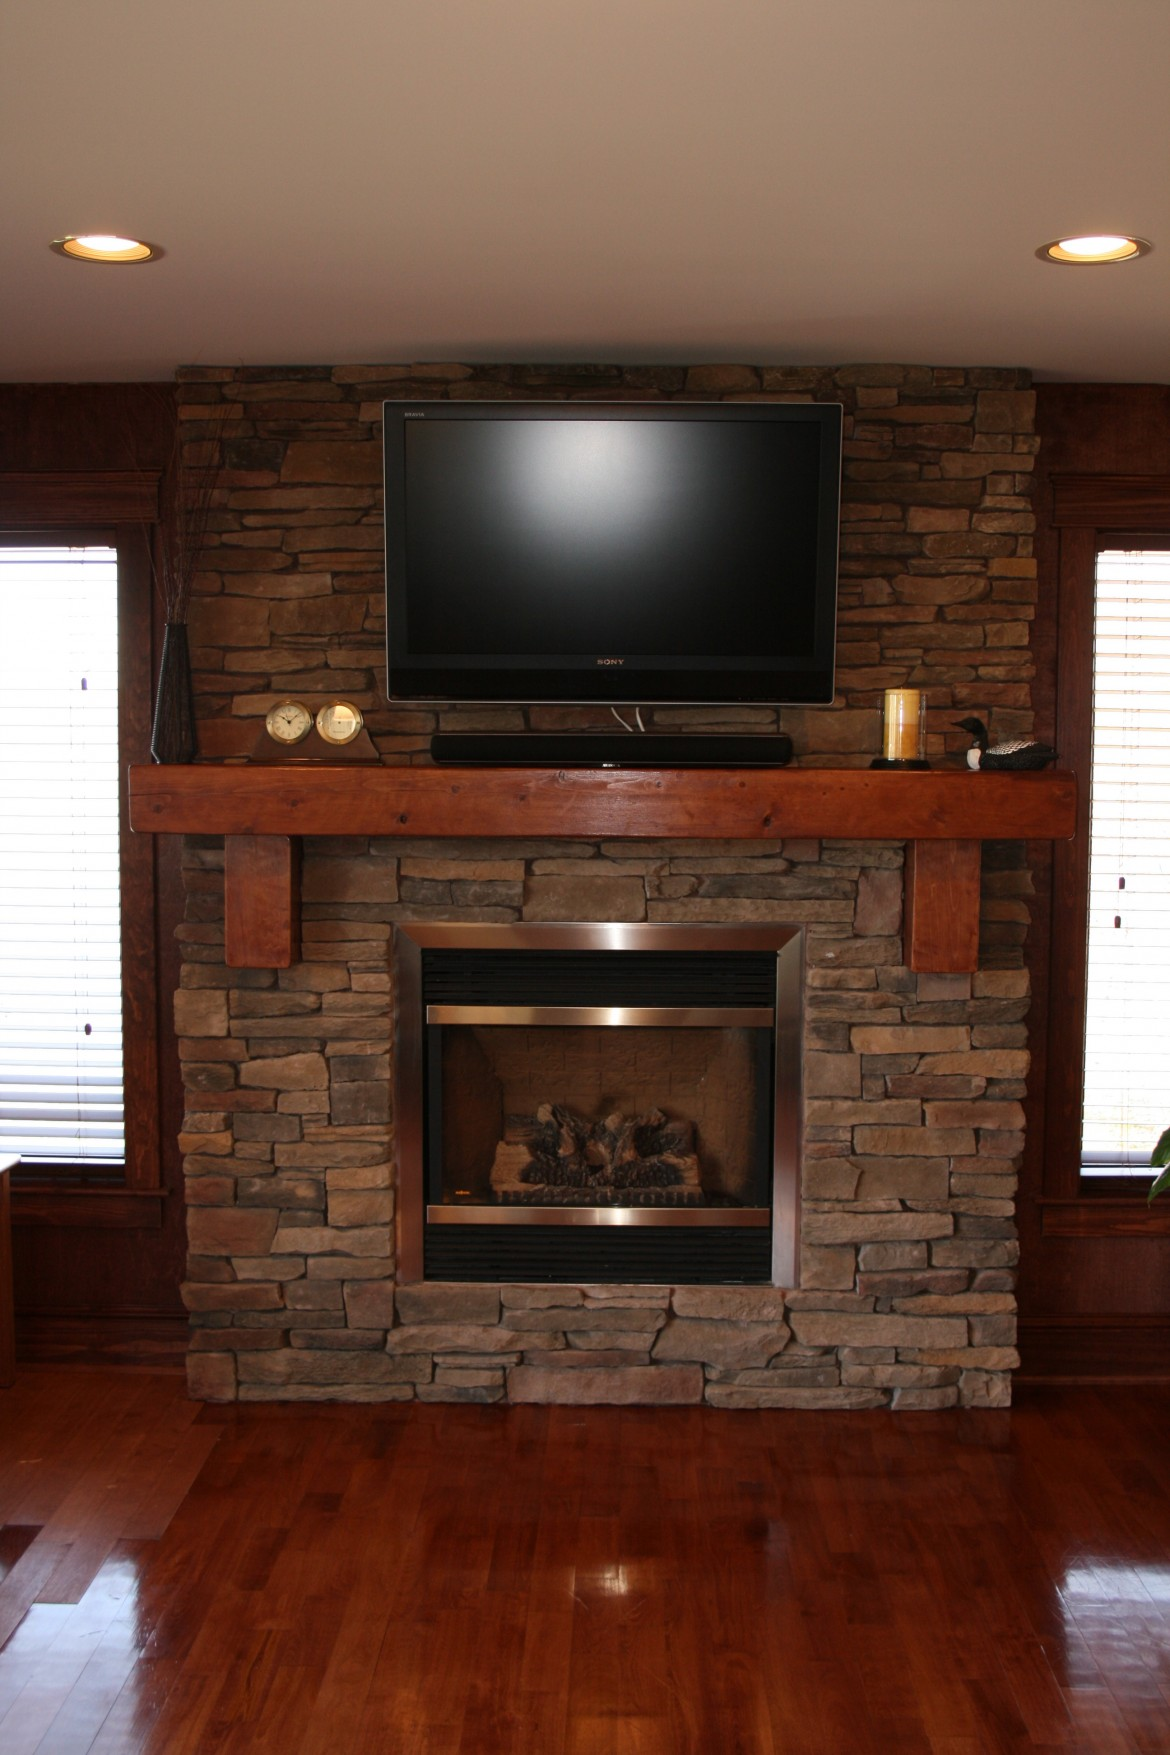 Lowes Fireplace Mantel | Ready Made Mantels | Fireplace Mantel Kits Lowes